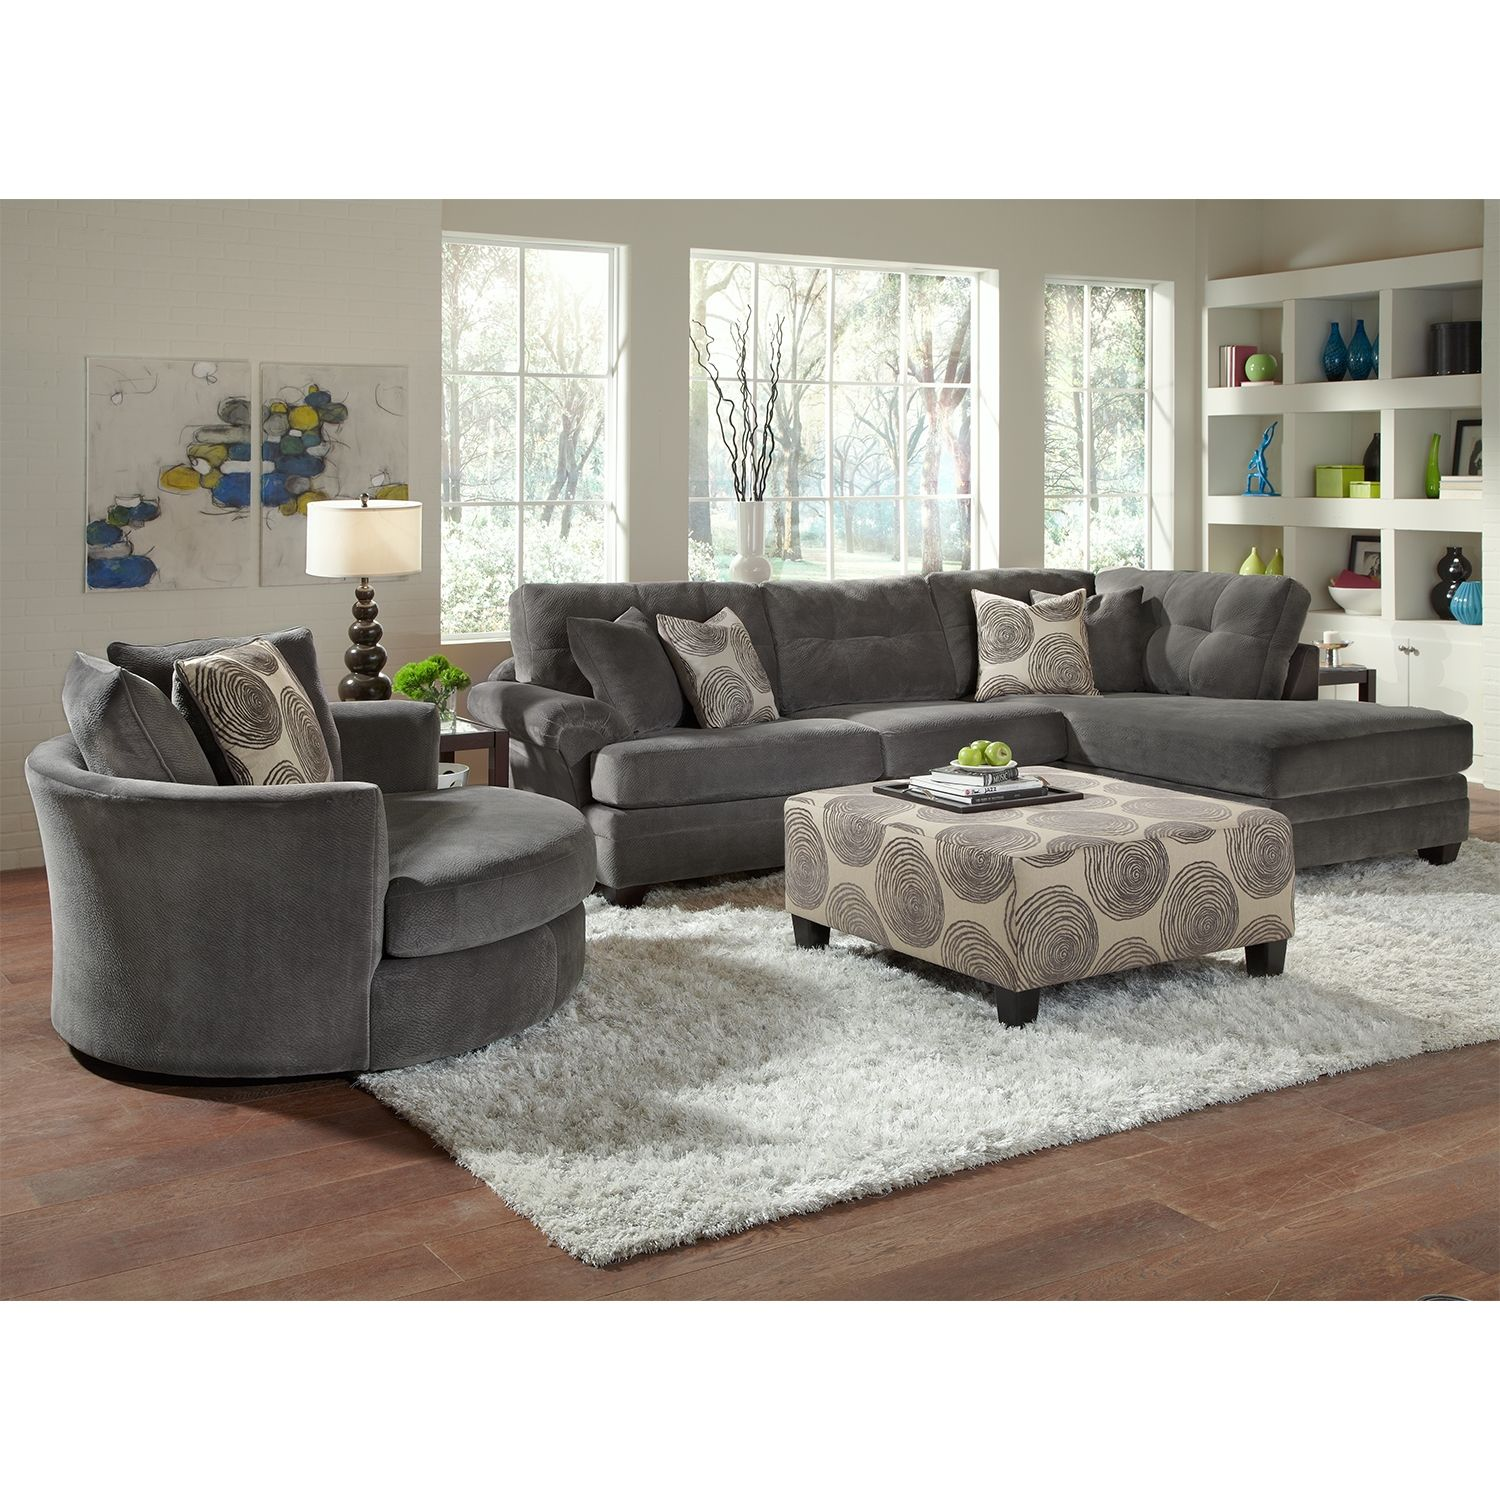 Home City Furniture Set Decoration Extraordinary Catalina Gray Upholstery 2 Pcsectional  Furniture  Home . Review